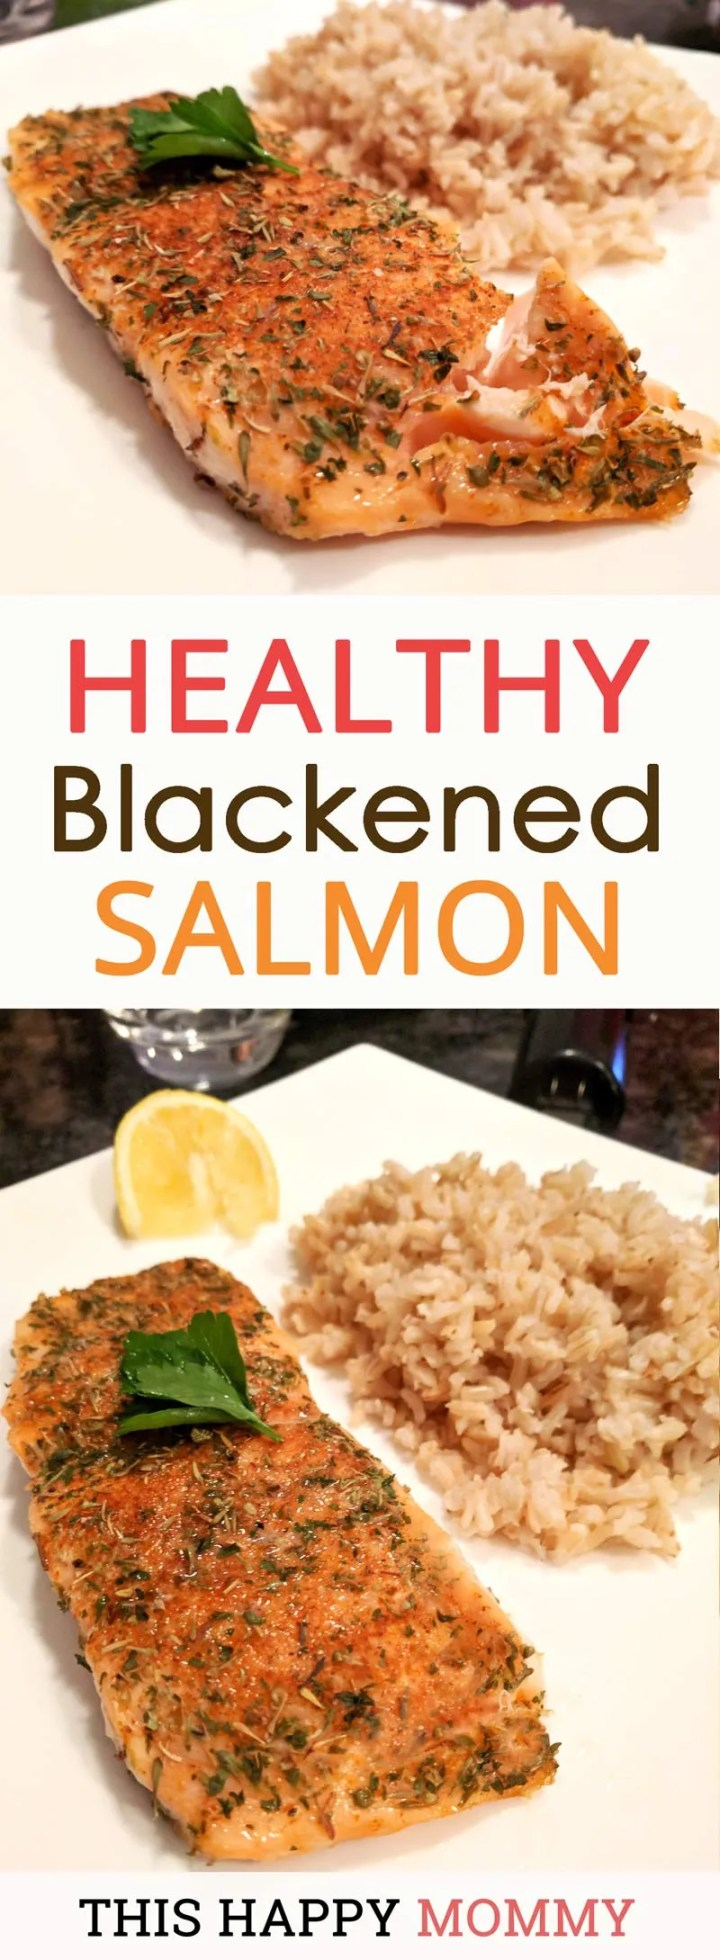 Give your salmon a boost of flavour with a blend of herbs and Cajun-style spices.In just 15 minutes, you can enjoy Healthy Blackened Salmon and it is so simple to make. Apply a quick dry rub to the salmon fillet and let it bake in the oven. That's it! | healthy fish recipes | healthy oven baked fish | quick and easy baked salmon | clean eating salmon recipes | #recipe #healthyrecipe #fish #salmon #bakedsalmon | thishappymommy.com